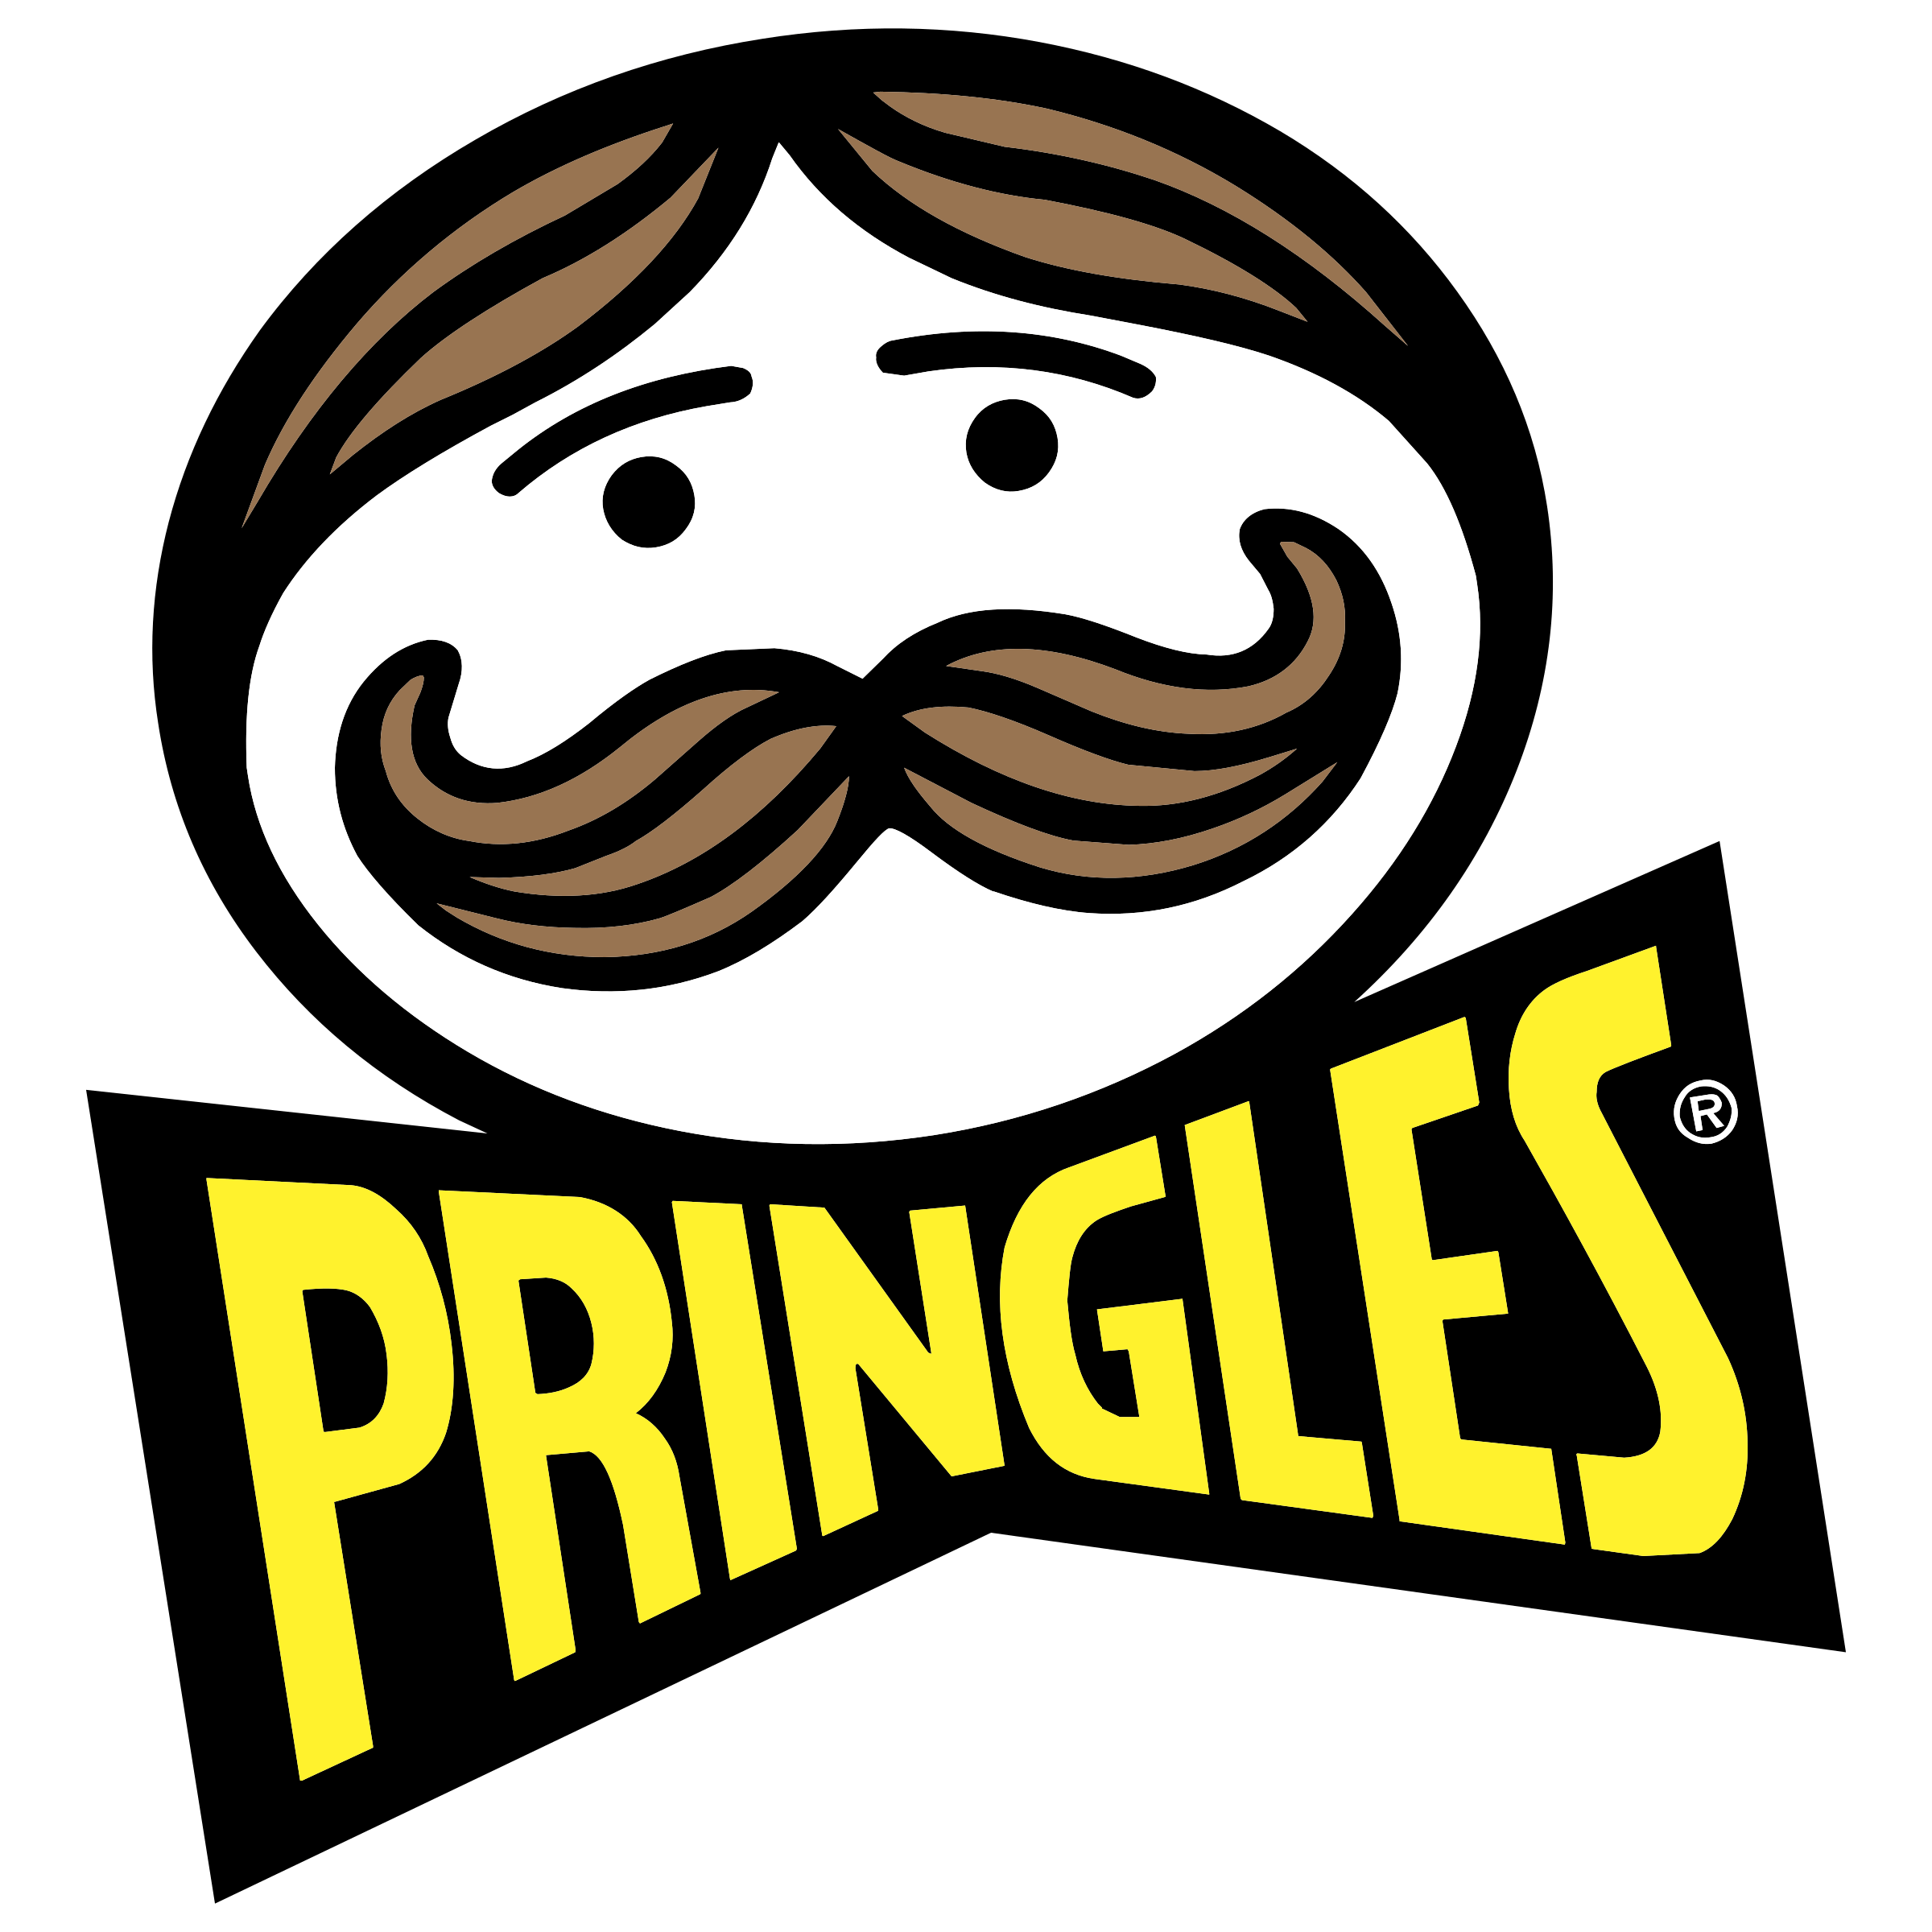 Pringles Logo - Pringles Logo PNG Transparent & SVG Vector - Freebie Supply